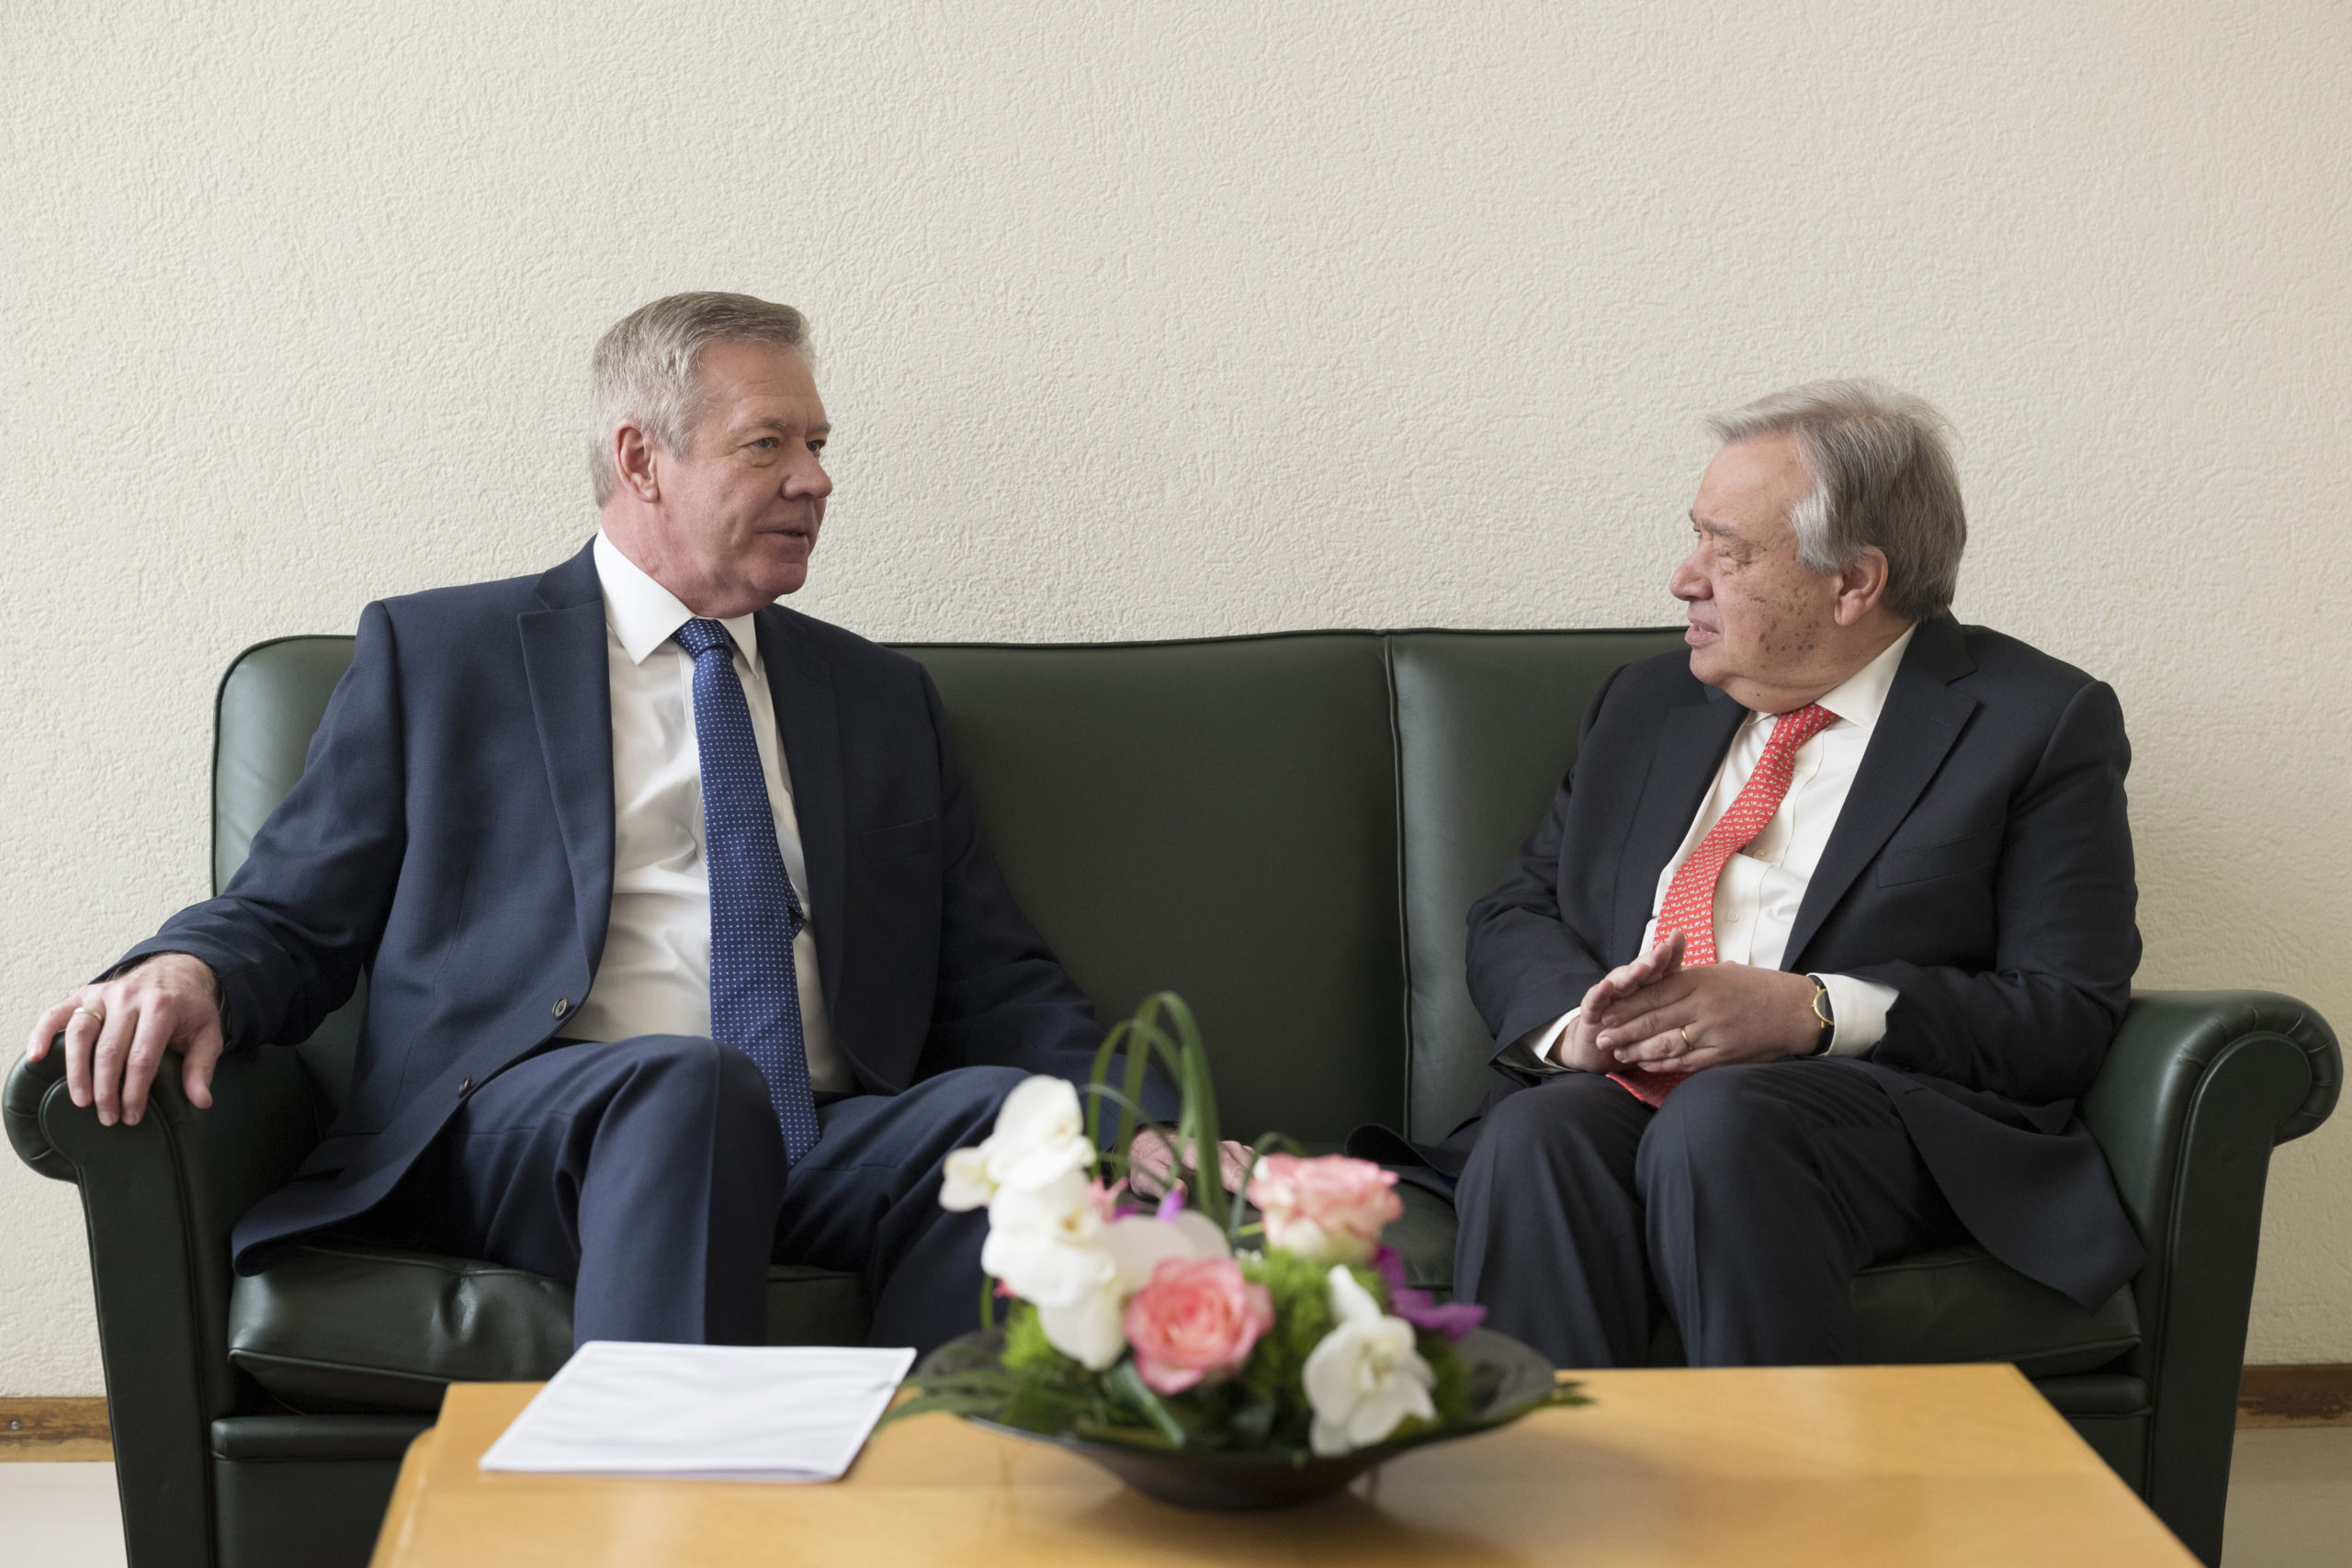 Secretary-General Antonio Guterres (right) in meeting with Gennady Gatilov, (left) during the High Level Pledging Event for the Humanitarian Crisis in April 2018. © UN photo / Jean-Marc Ferré